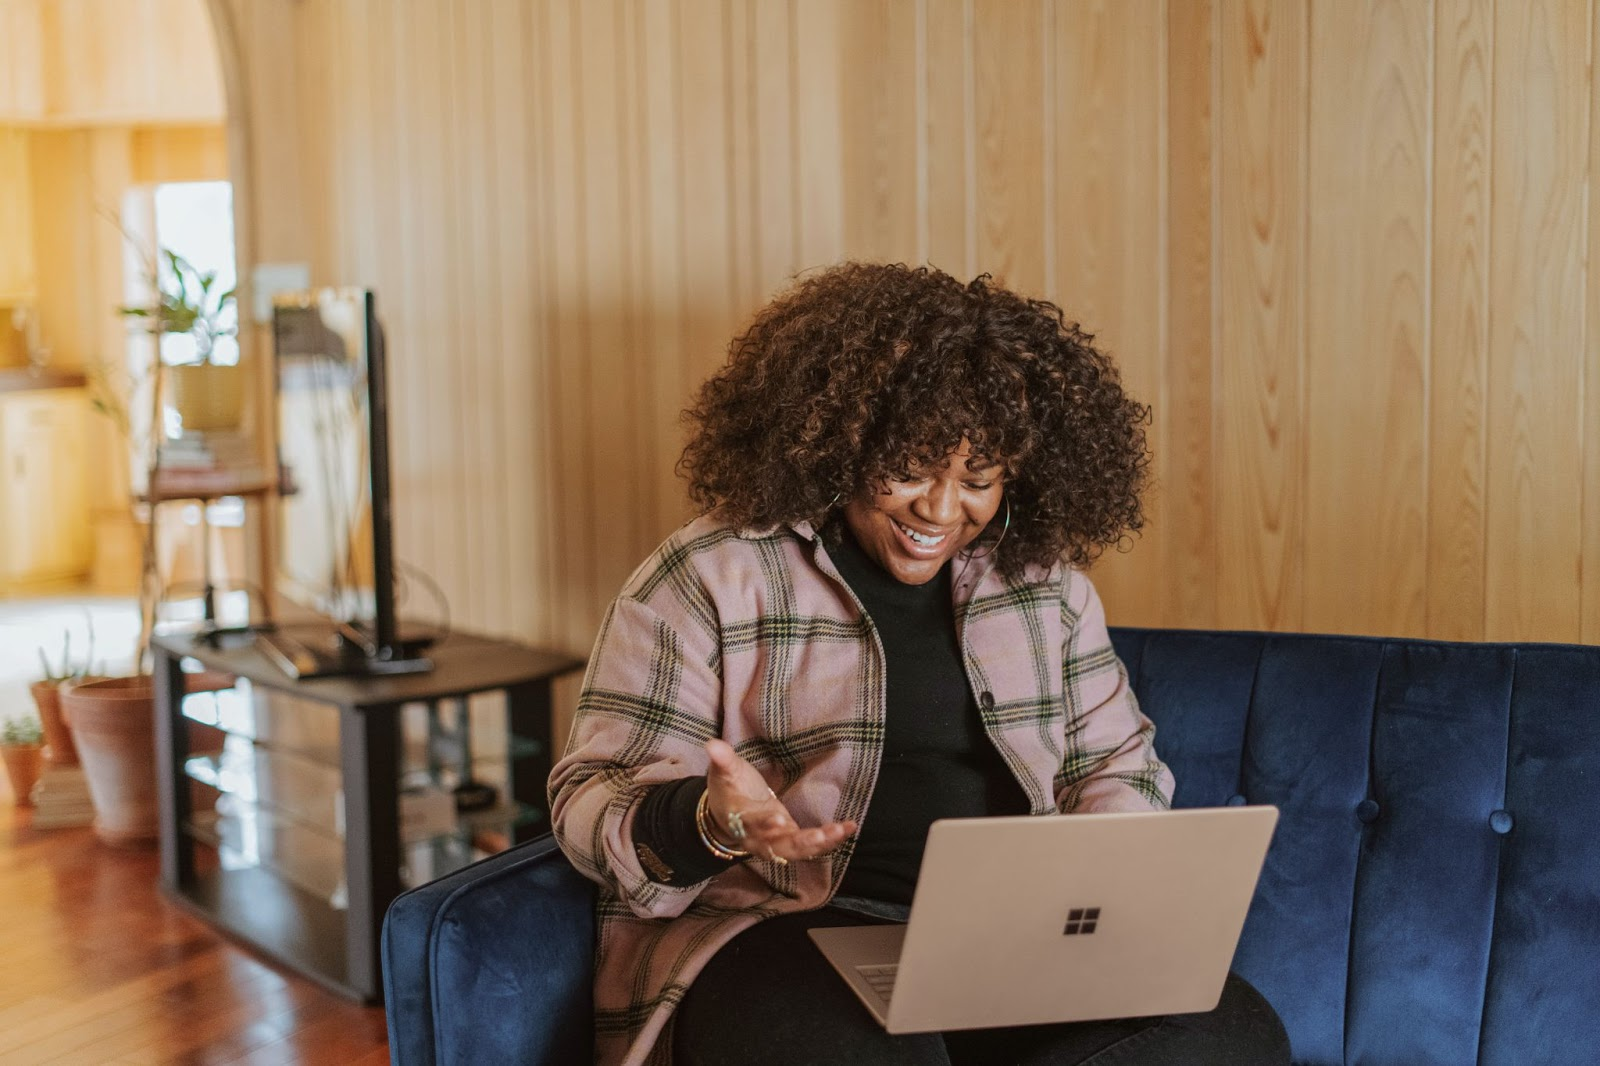 Woman sitting on couch while holding a laptop